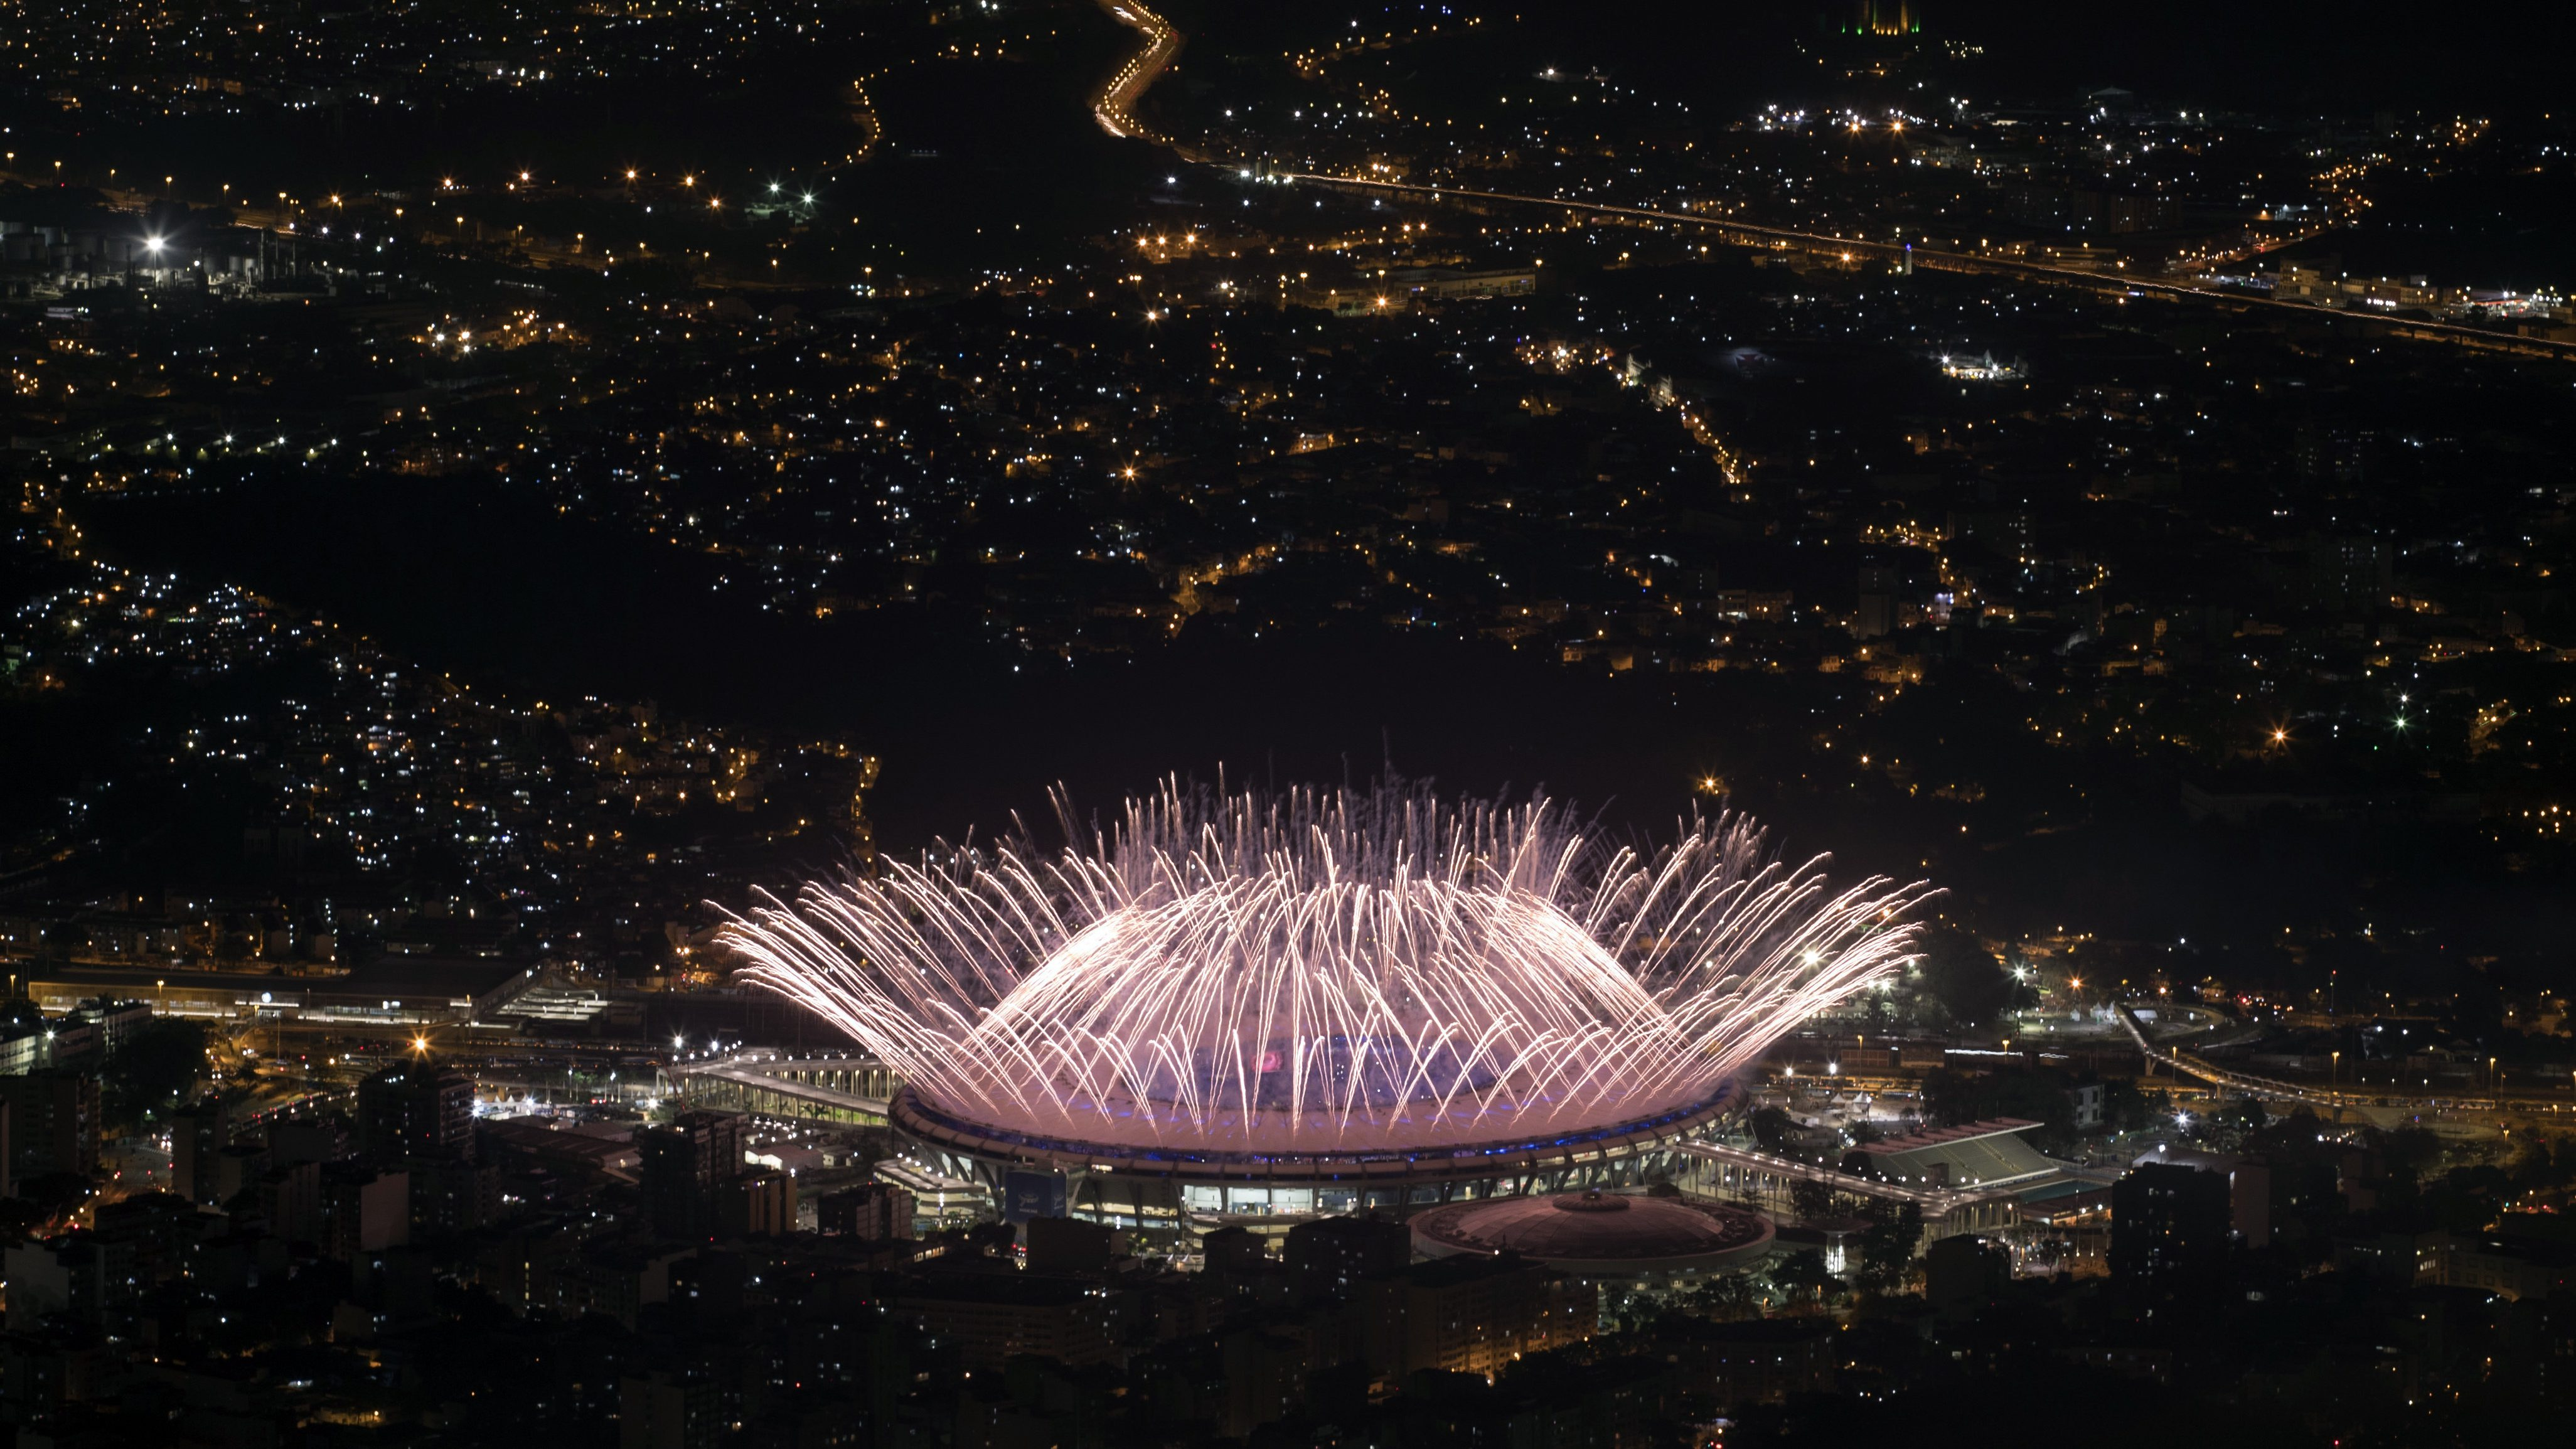 Fireworks explode over Maracana Stadium during the opening ceremony at the 2016 Summer Olympics in Rio de Janeiro, Brazil.